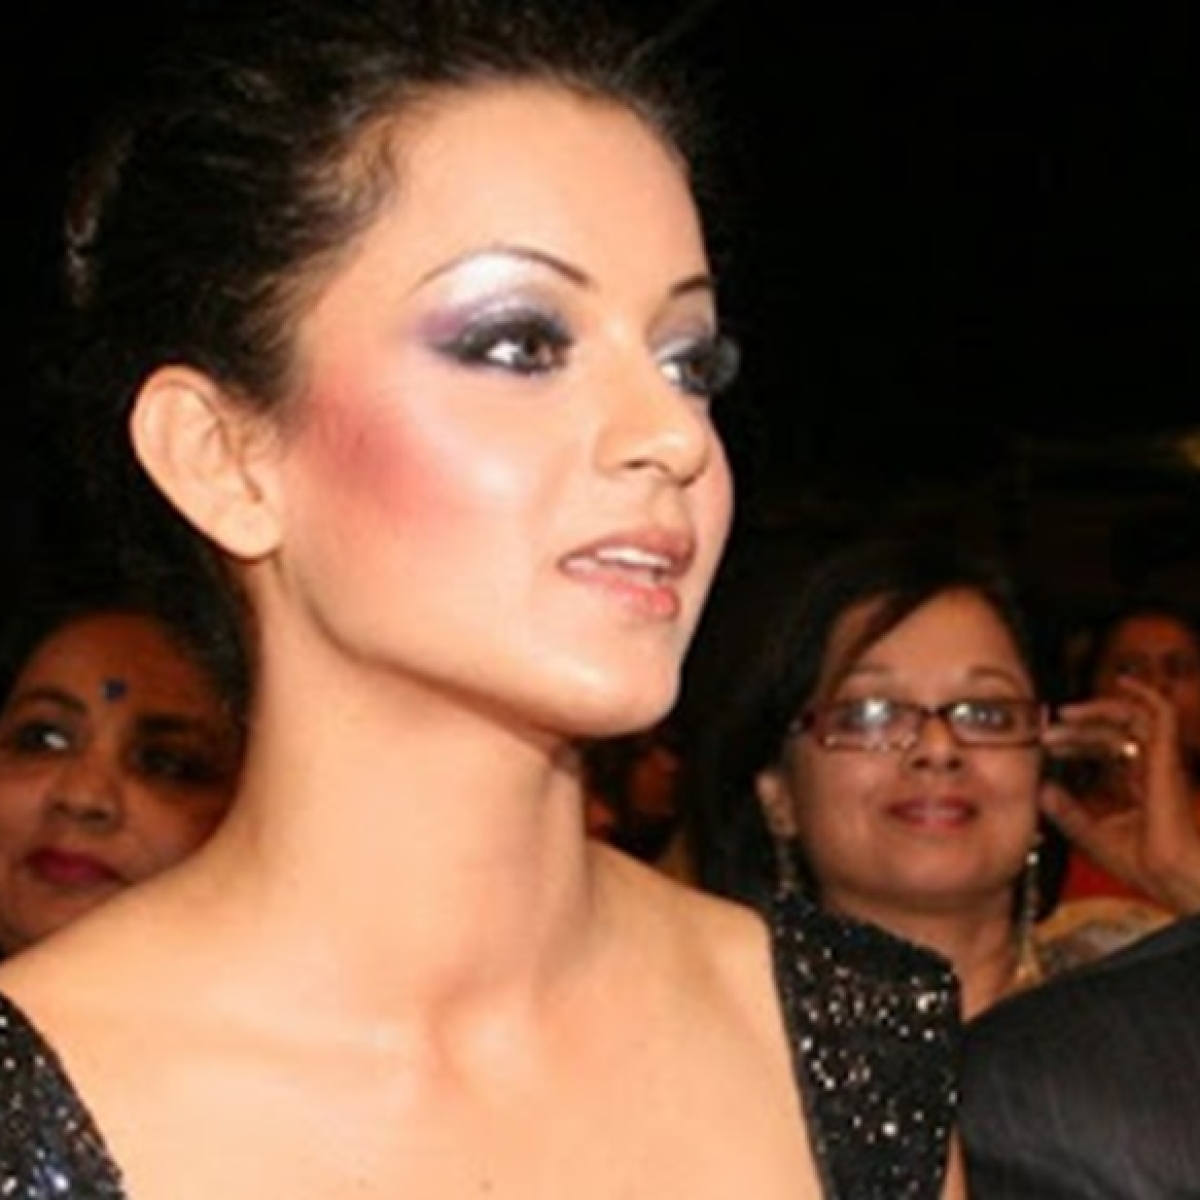 Did Kangana Ranaut just accuse Aditya Pancholi of sedating her to prevent from going to cops?